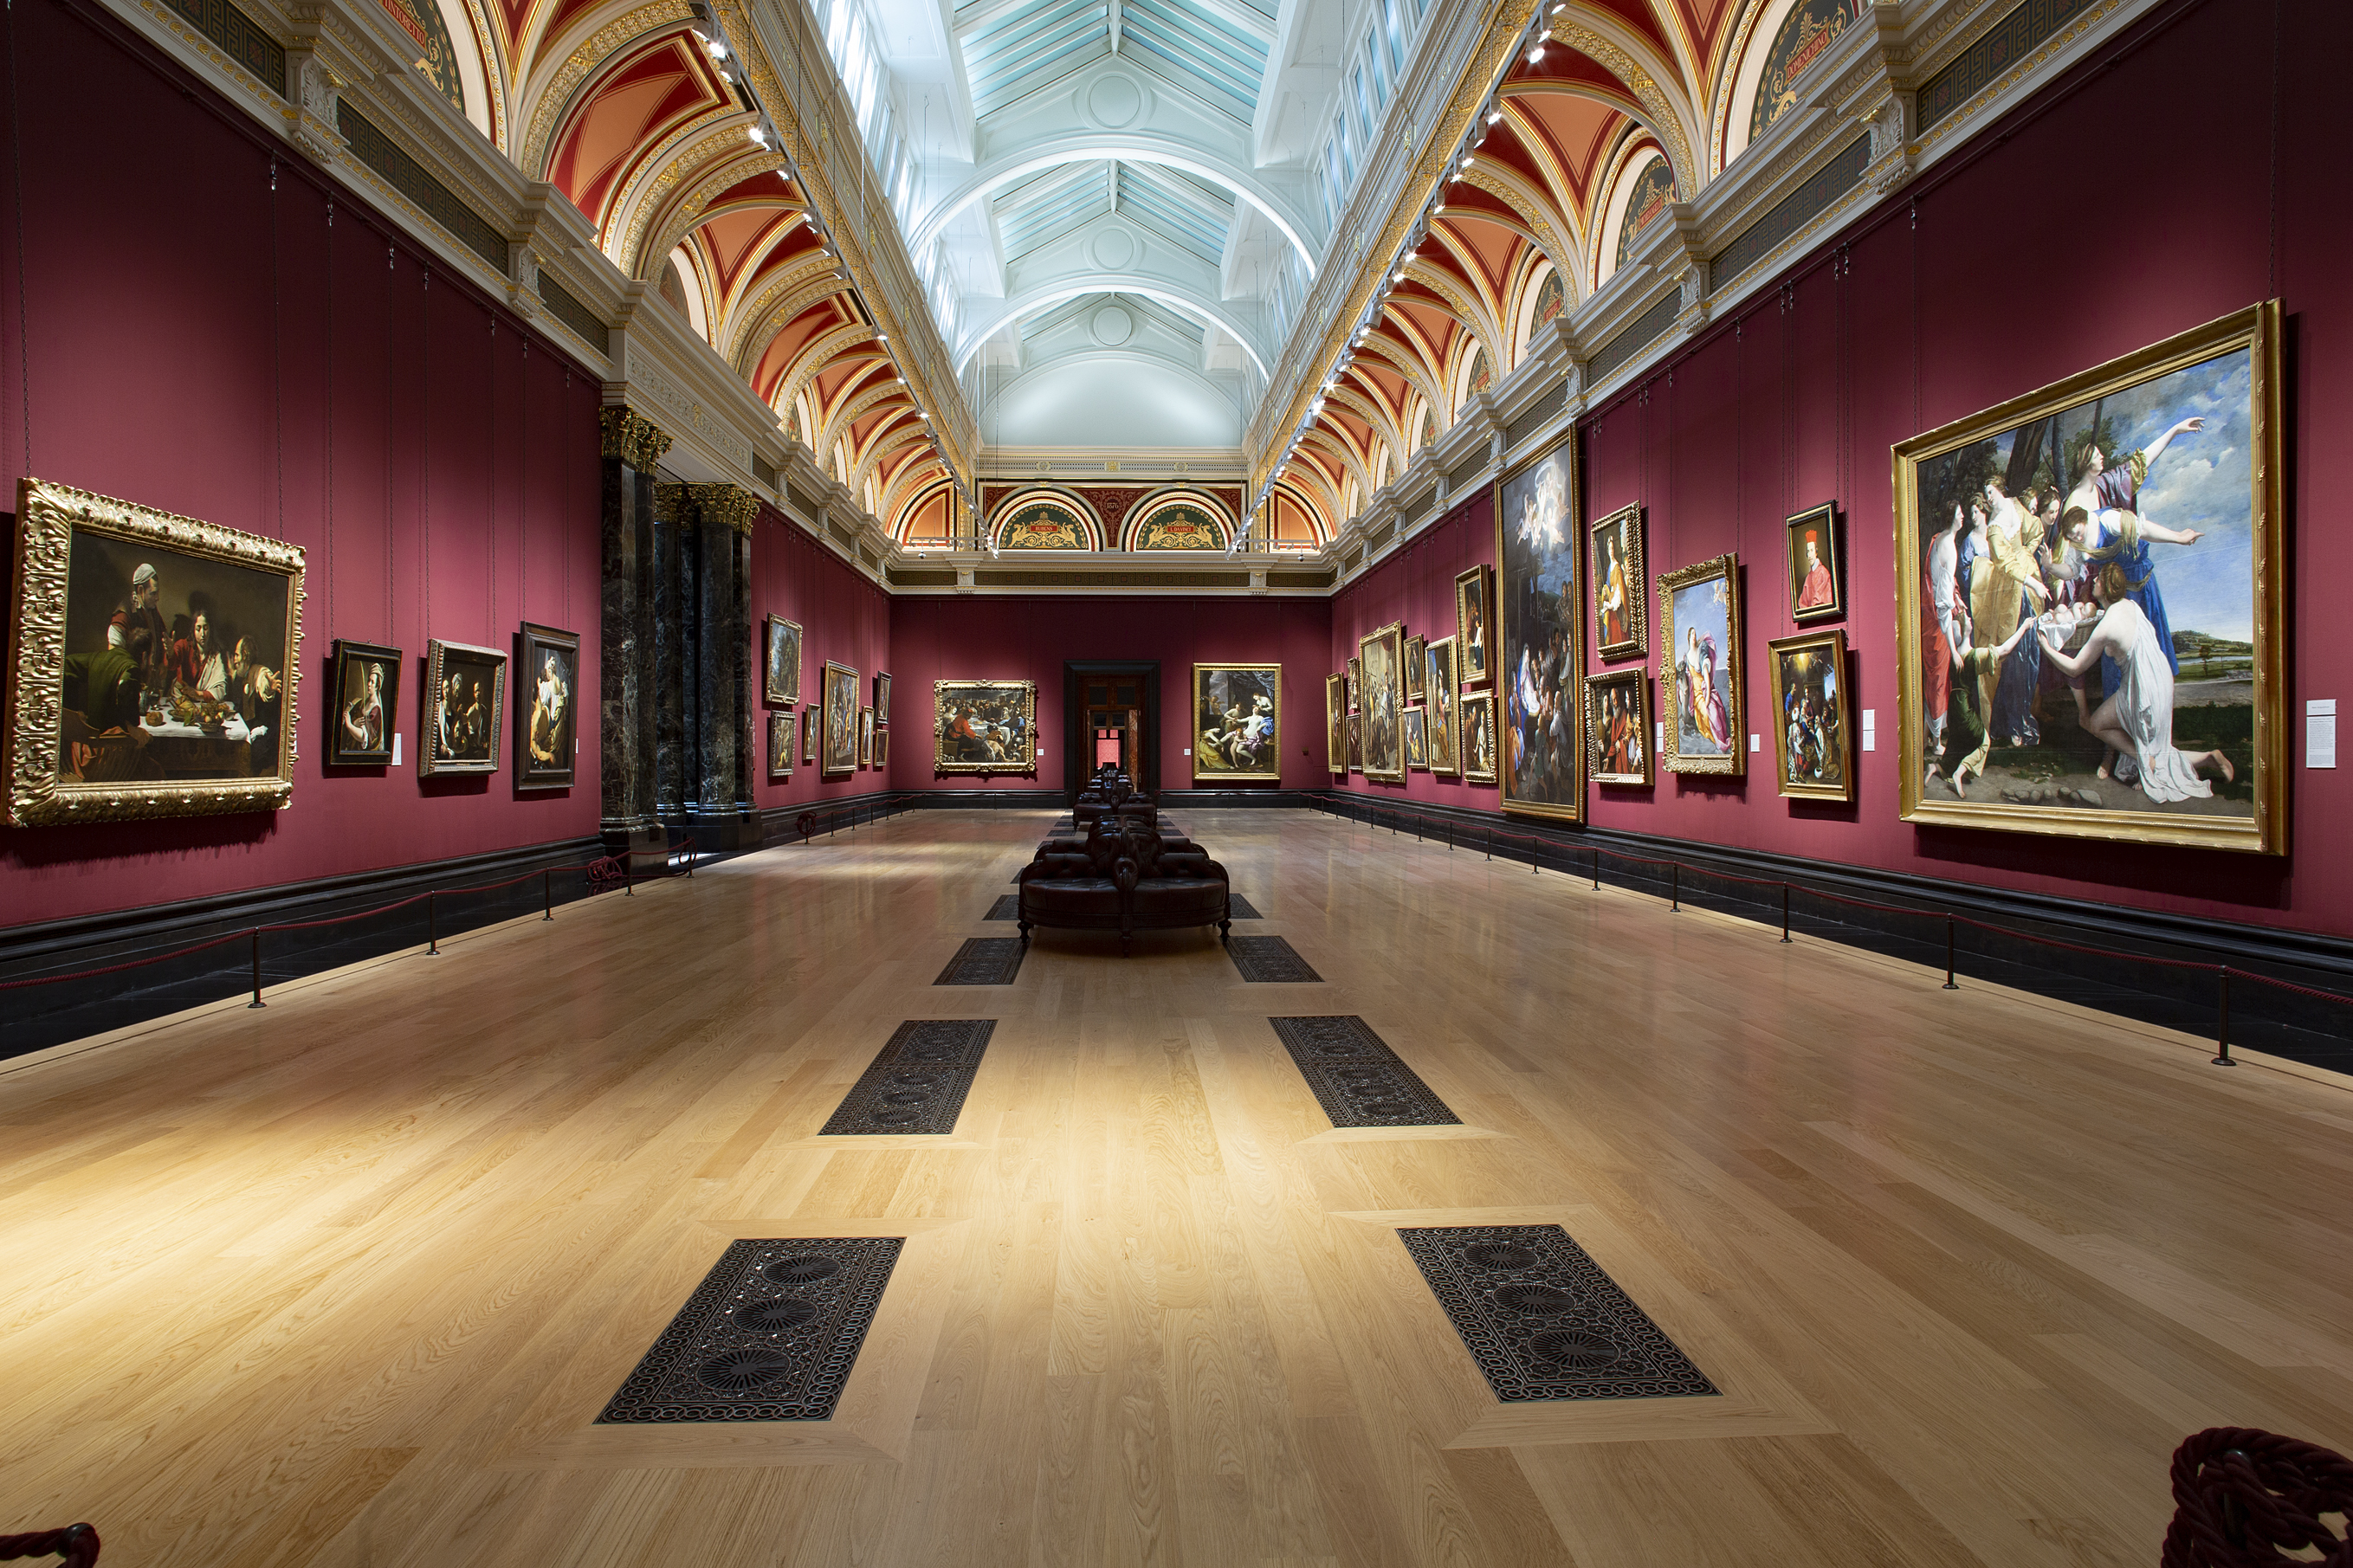 NEWS: National Gallery to Reopen Room 32 – Love London Love Culture